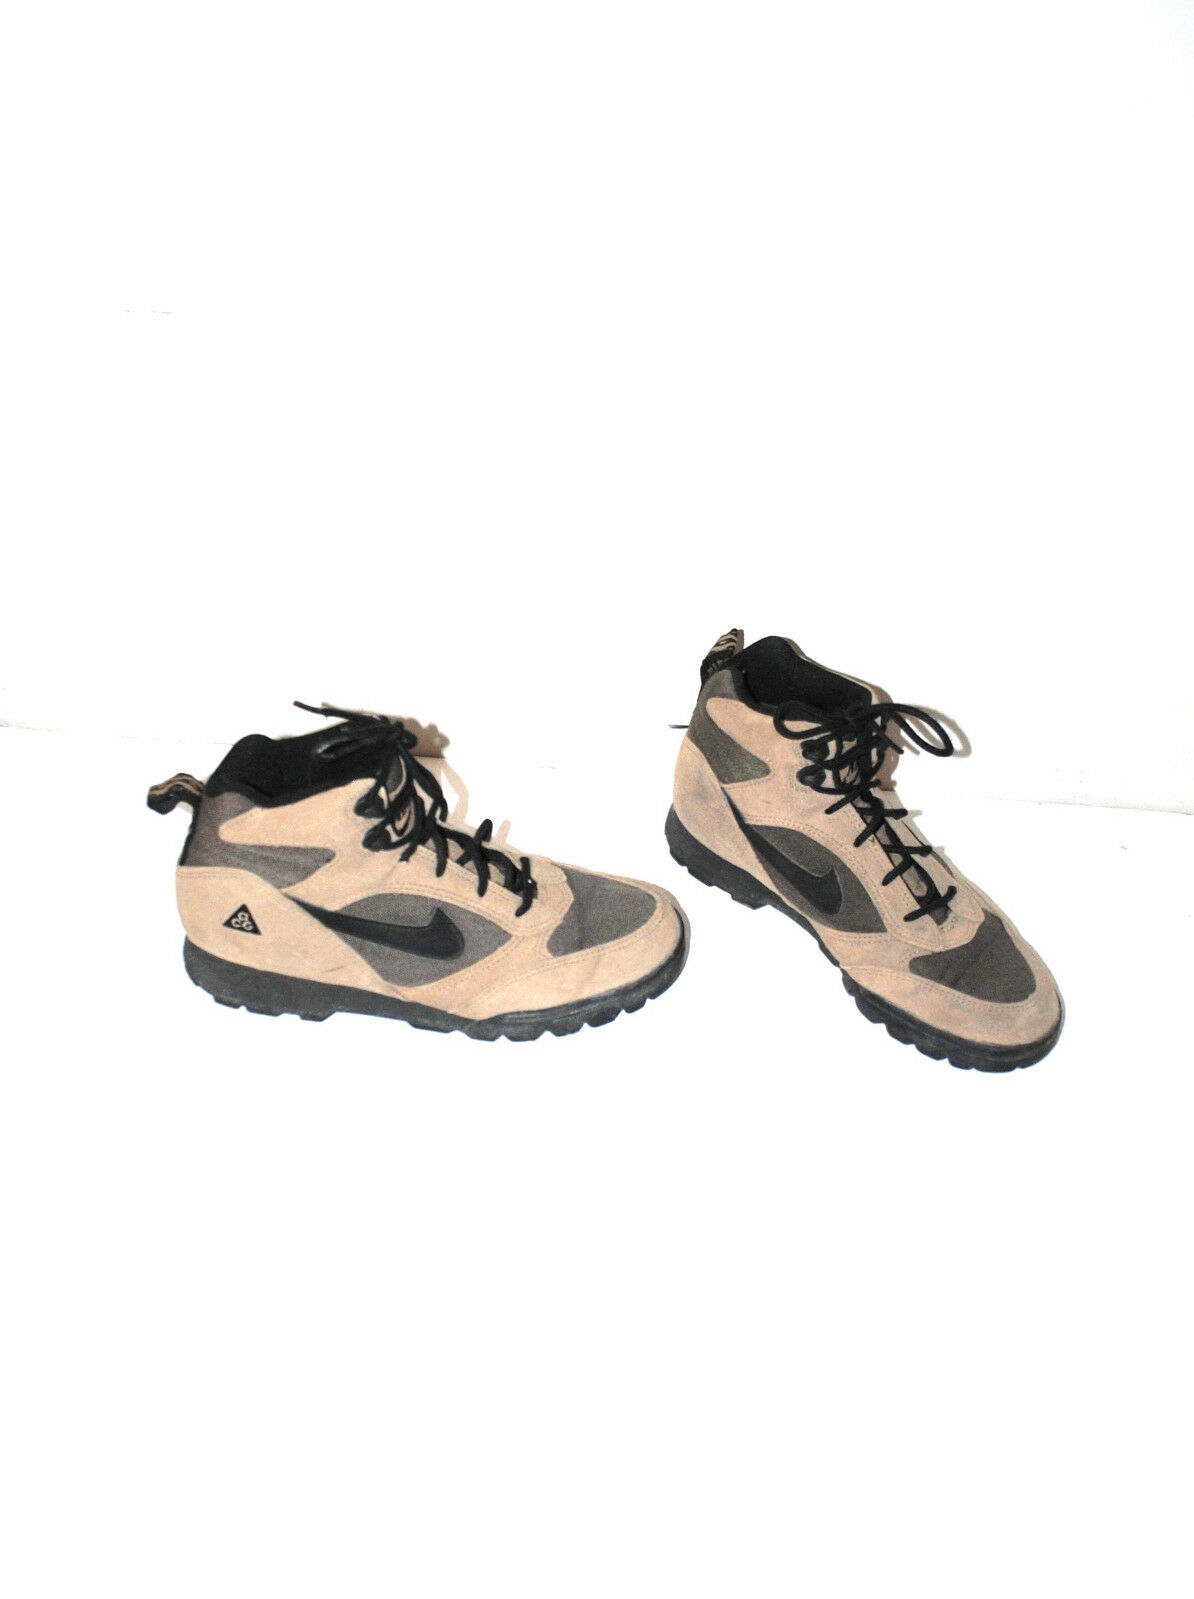 vintage nike hiking boots 90s athletic hikers size 8